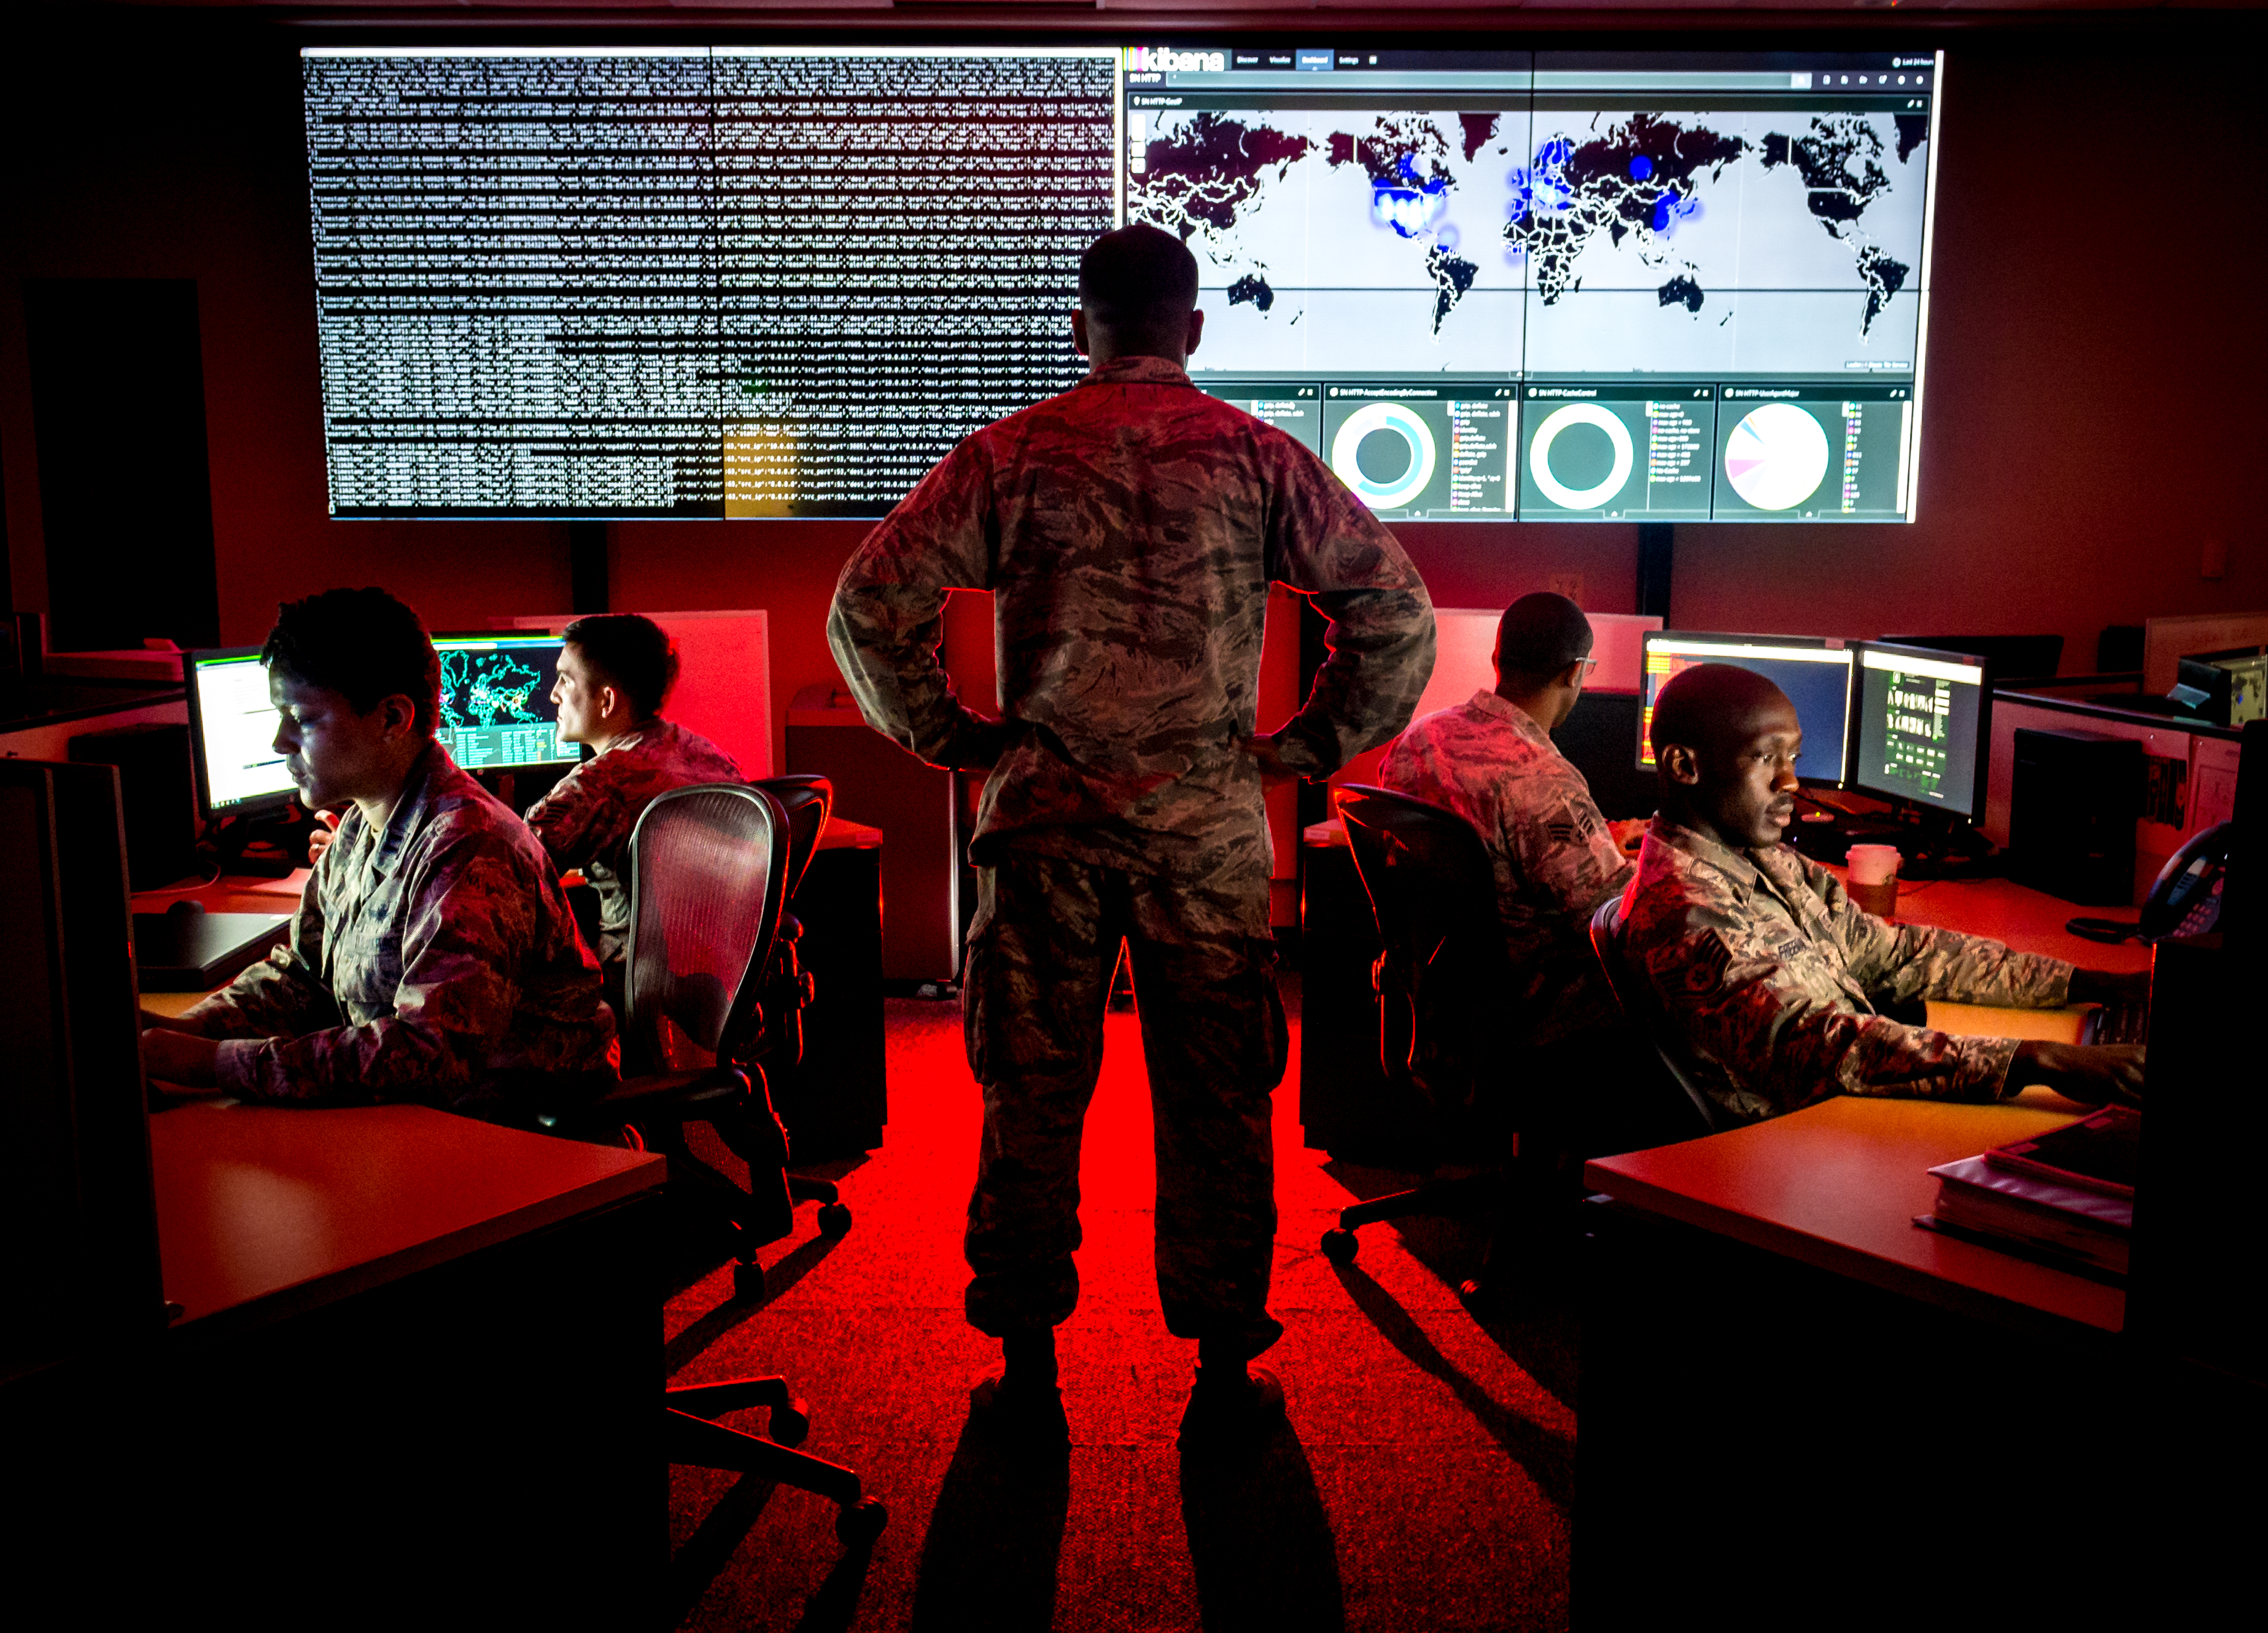 Hackers, Hawks and Hawkers: Subcultures of Cyber Warfare